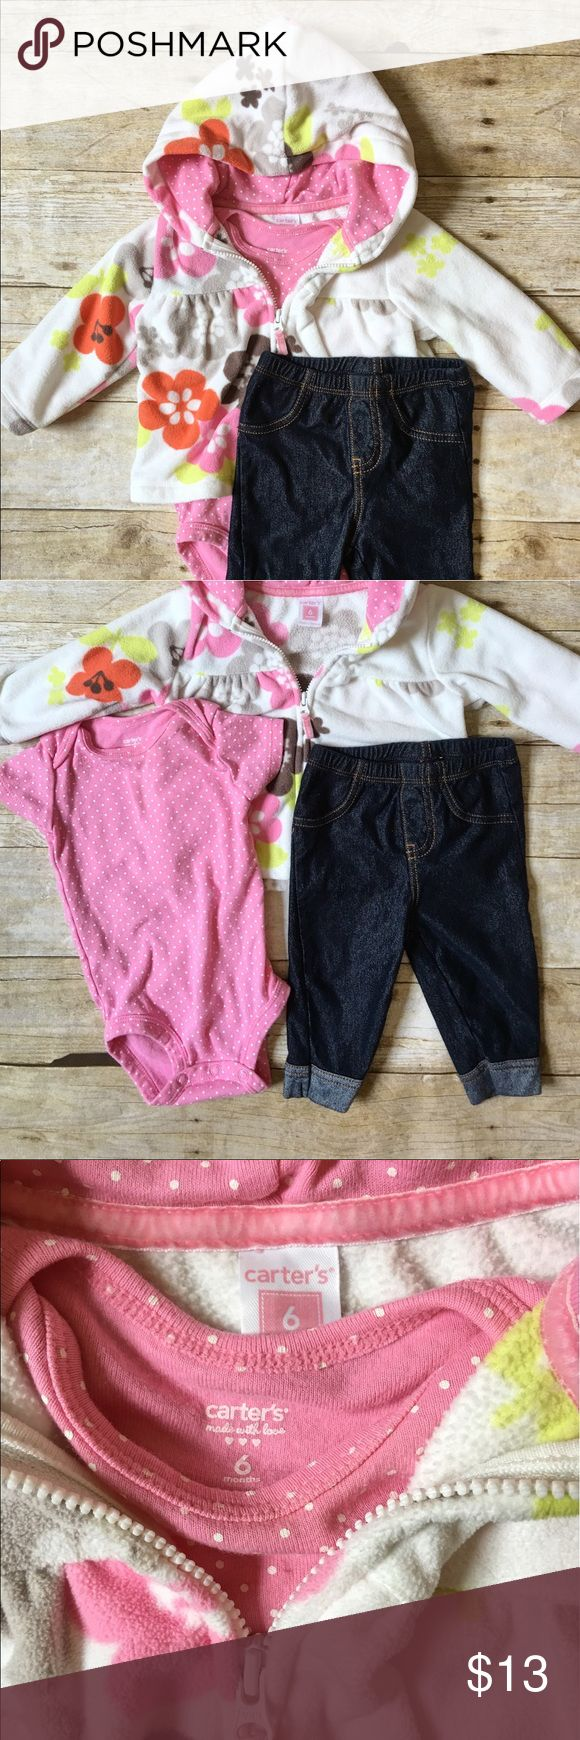 CARTERS Floral Fleece Hoodie Set Adorable and cozy warm fleece set includes a pink wig polka dots onesie, jean leggings, and a floral hoodie fleece sweater. Carter's Matching Sets